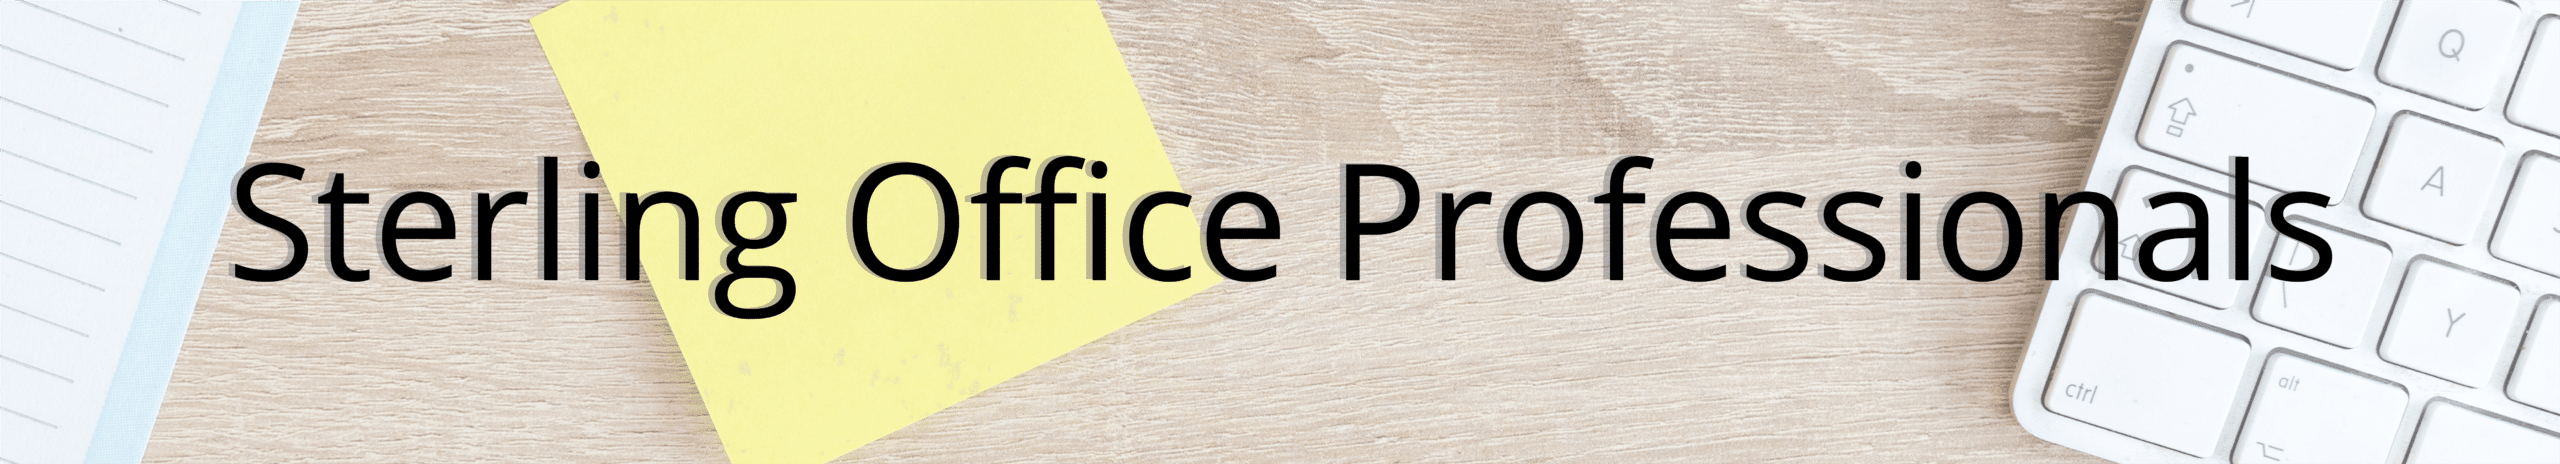 """Sterling Office Professionals Header Graphic - sticky notes and a keyboard on a table with the text """"Sterling Office Professionals"""" laid over top of the image"""